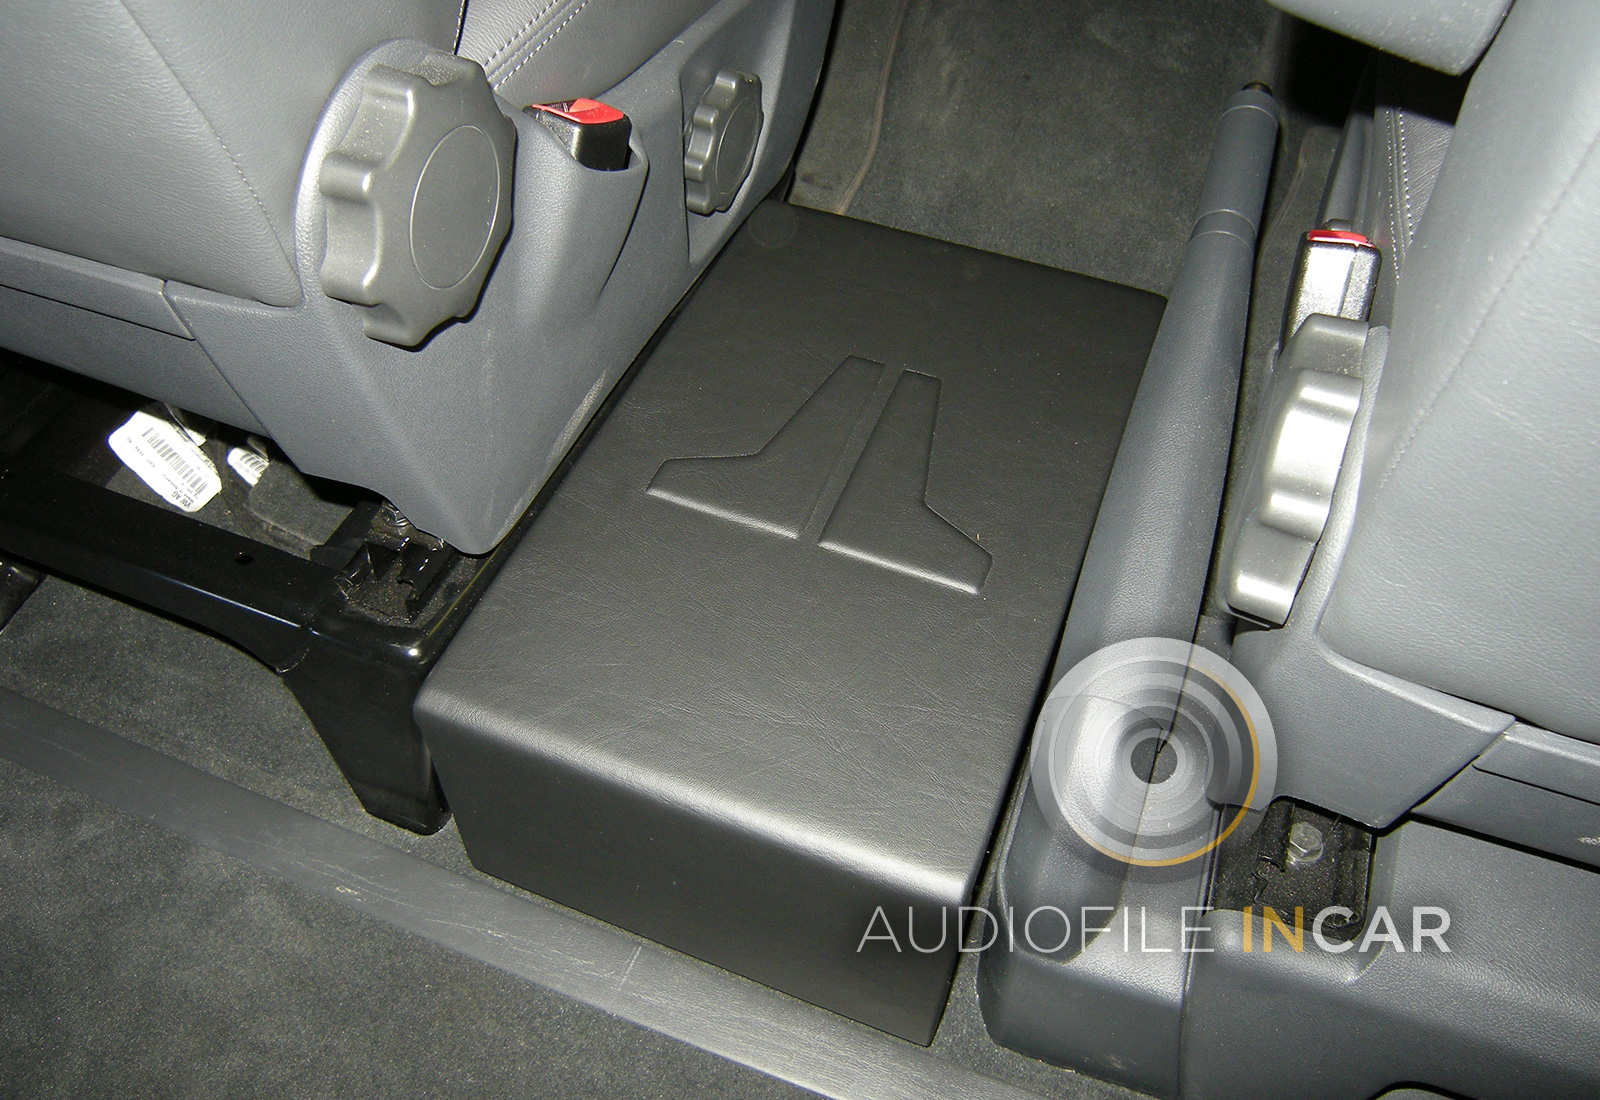 The Sub-Bass is provided by a down-firing JL Audio 6W3 subwoofer, we then fabricate a custom top panel with the JL logo inset to make the installation unique.